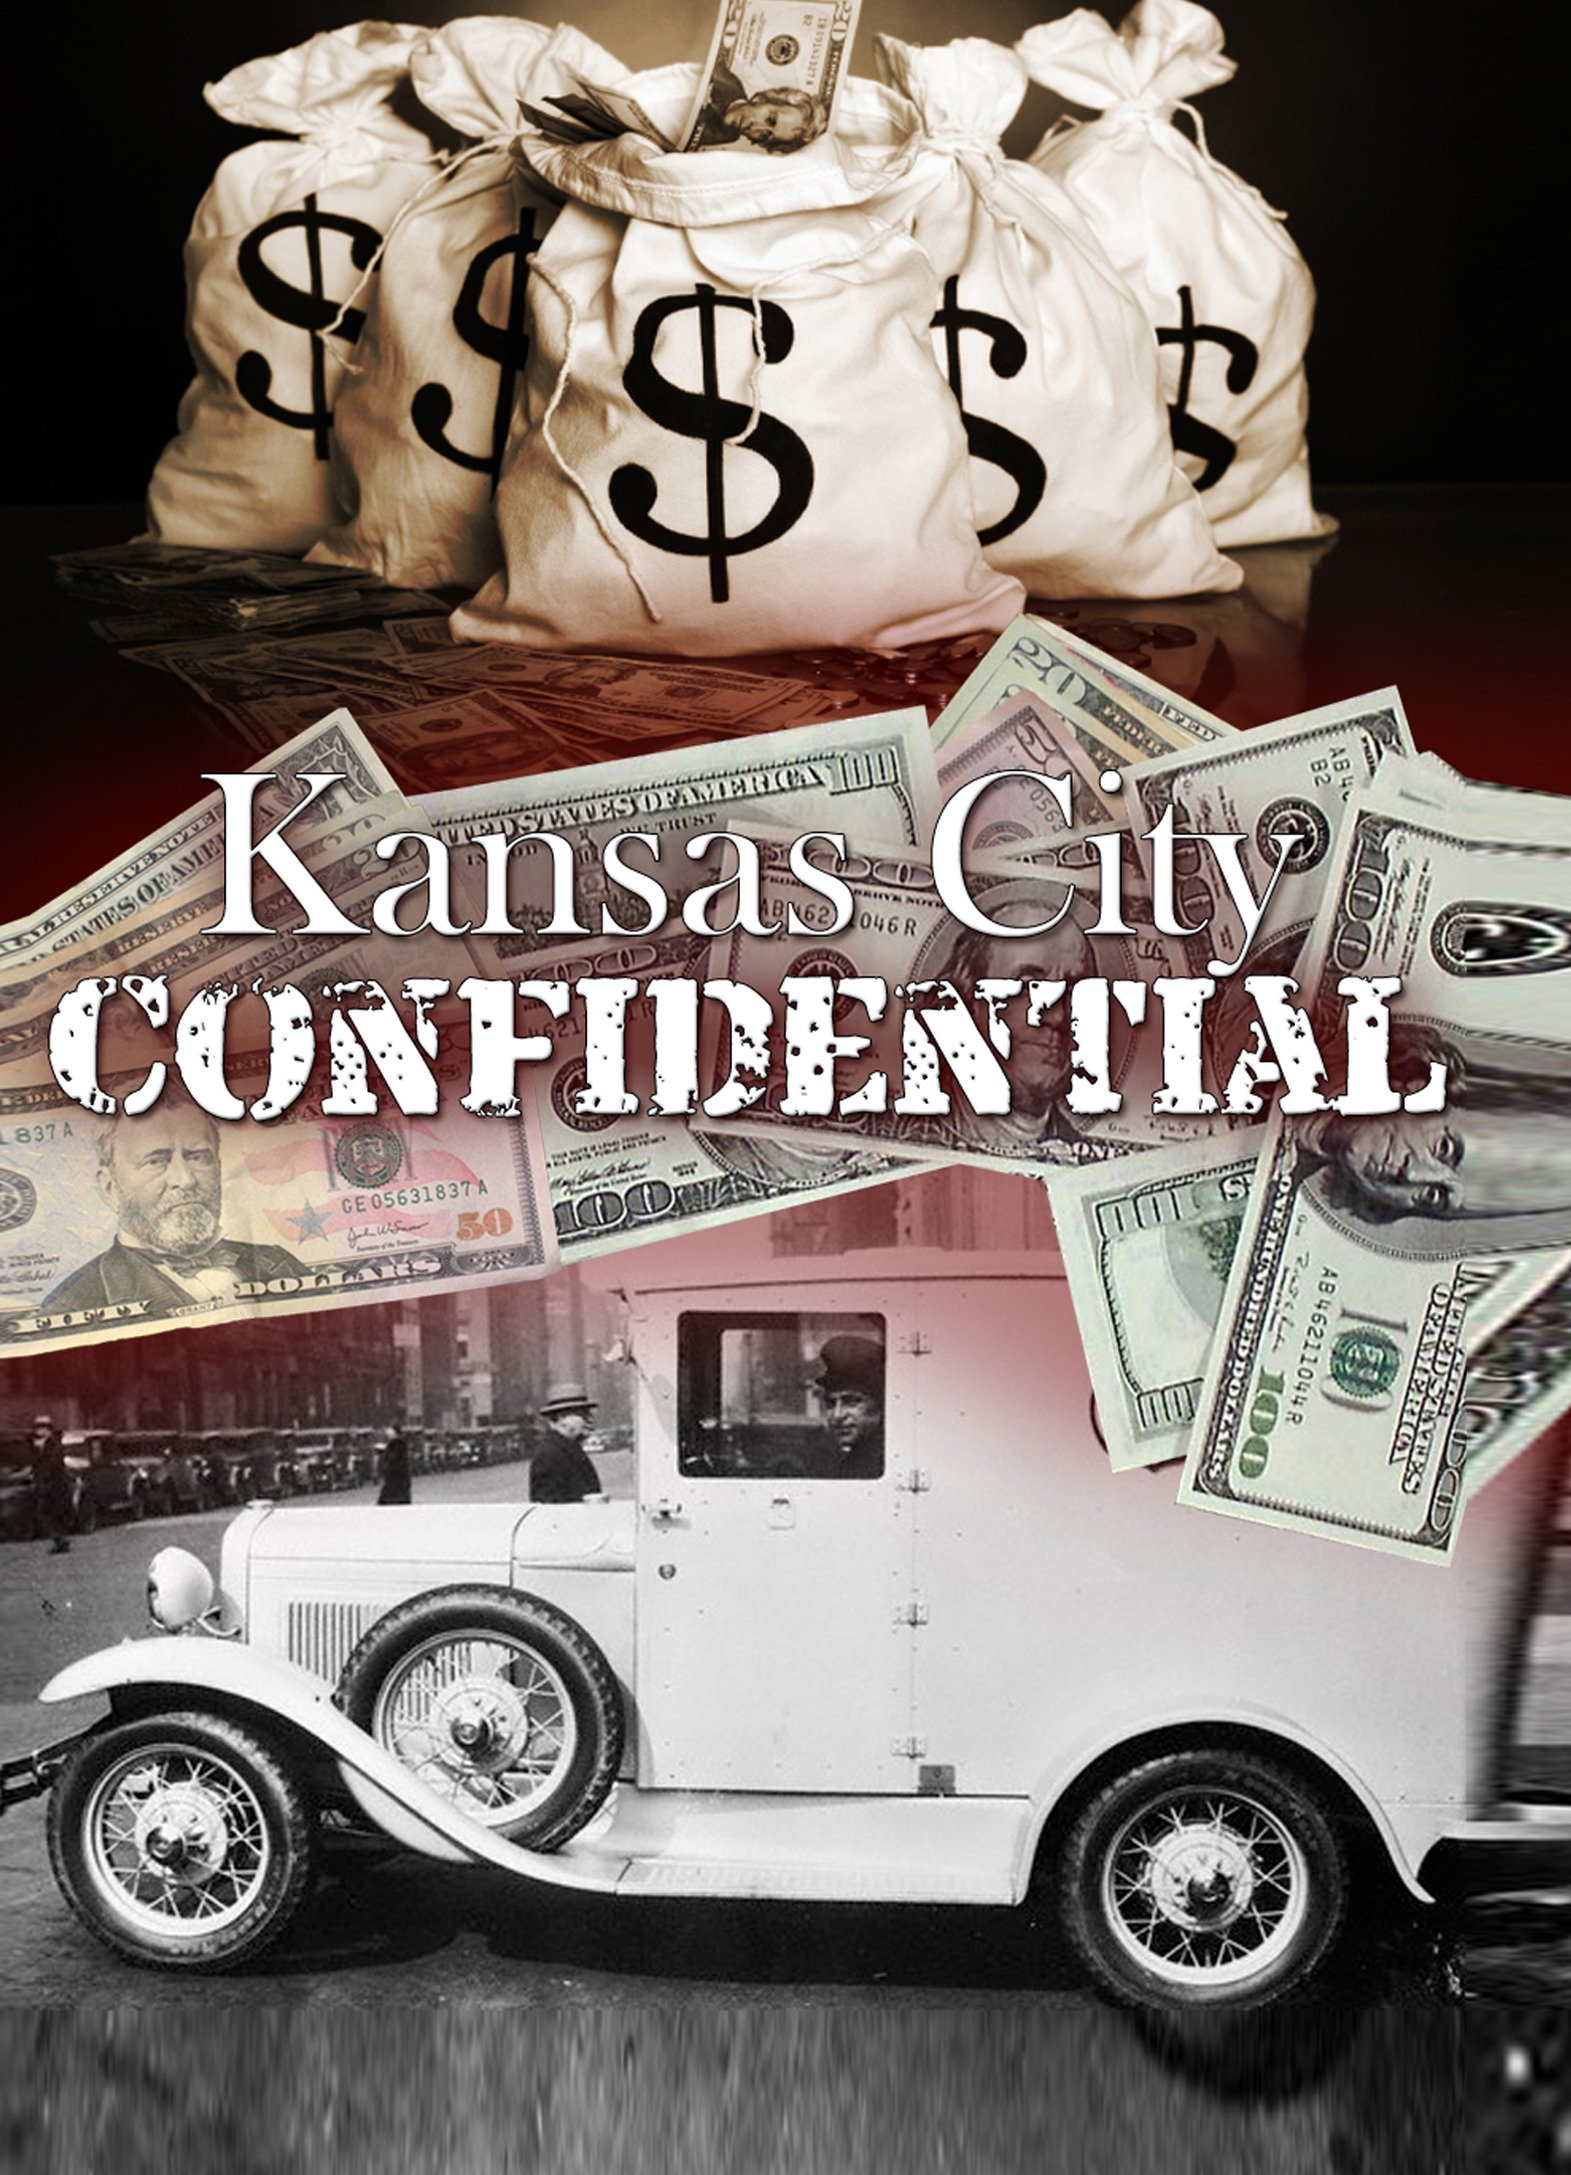 Kansas City Confidential (1952)